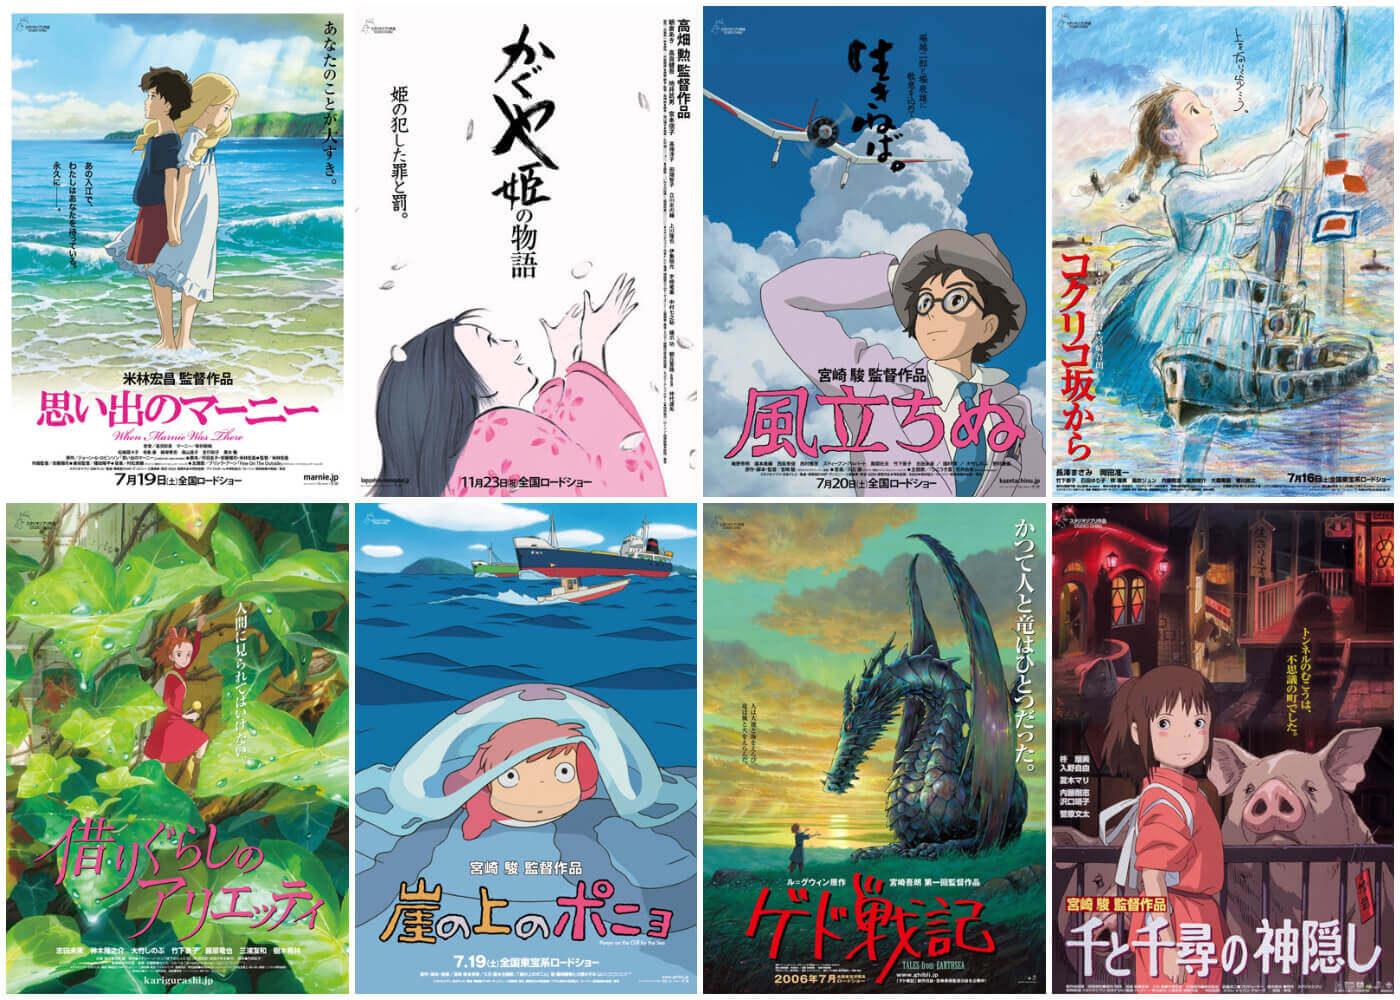 Studio Ghibli S 400 Free Images Let You Be Spirited Away On Zoom Calls